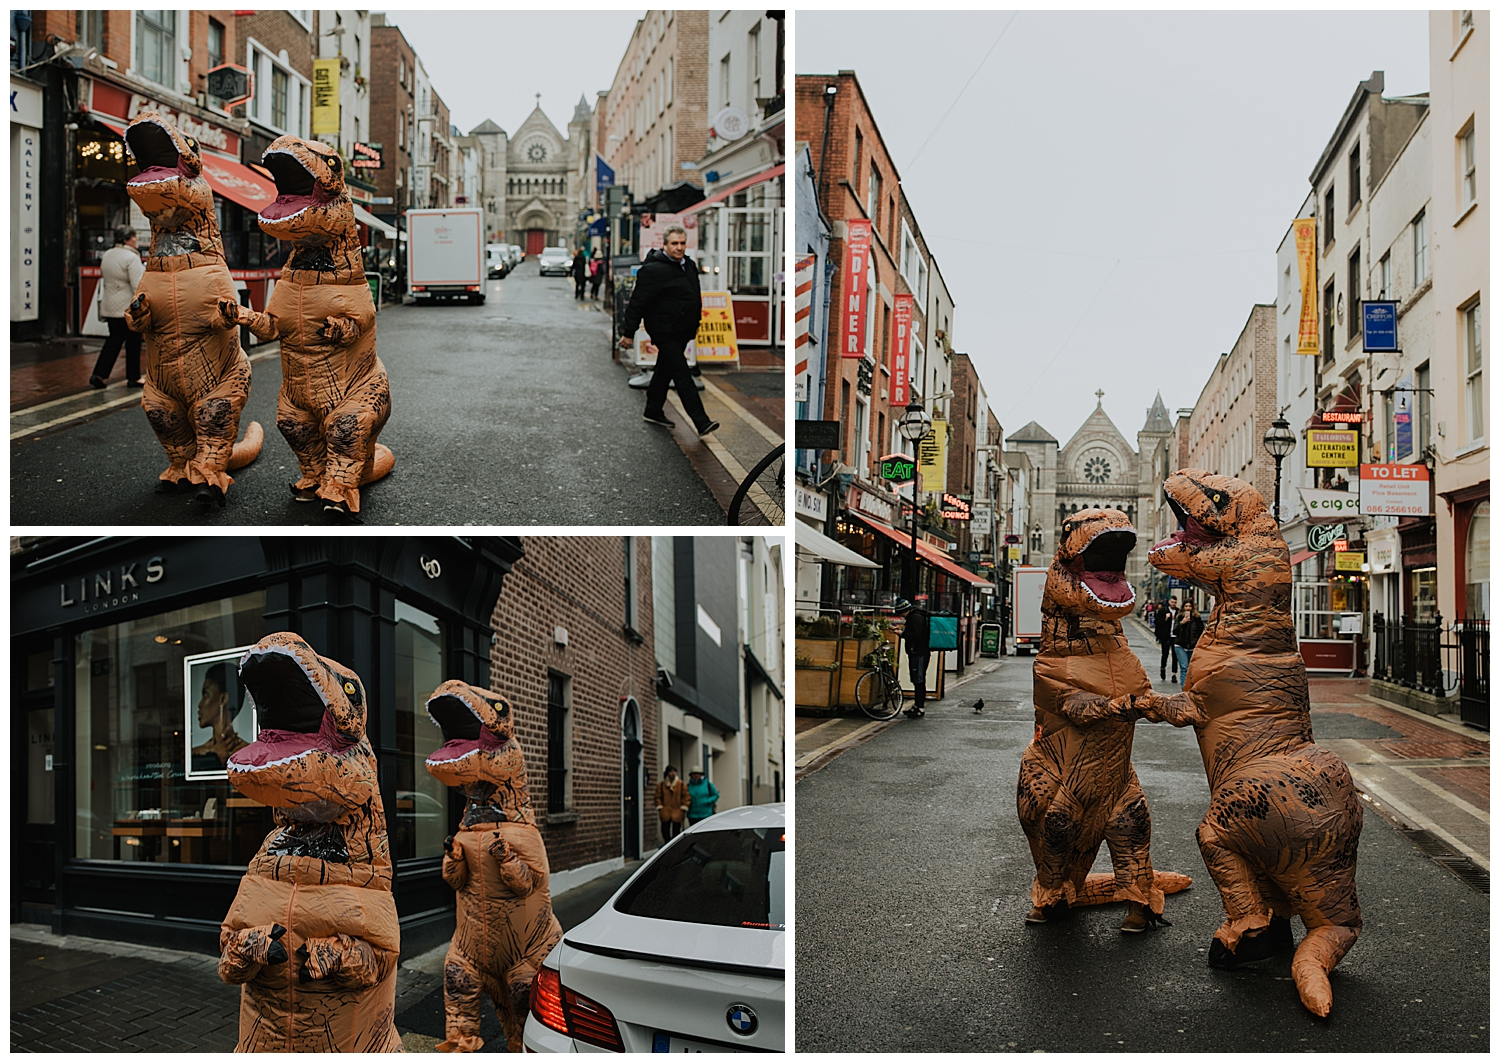 m-m-t-rex-engagement-session-wedding-photographer-dublin-ireland-livia-figueiredo-58.jpg